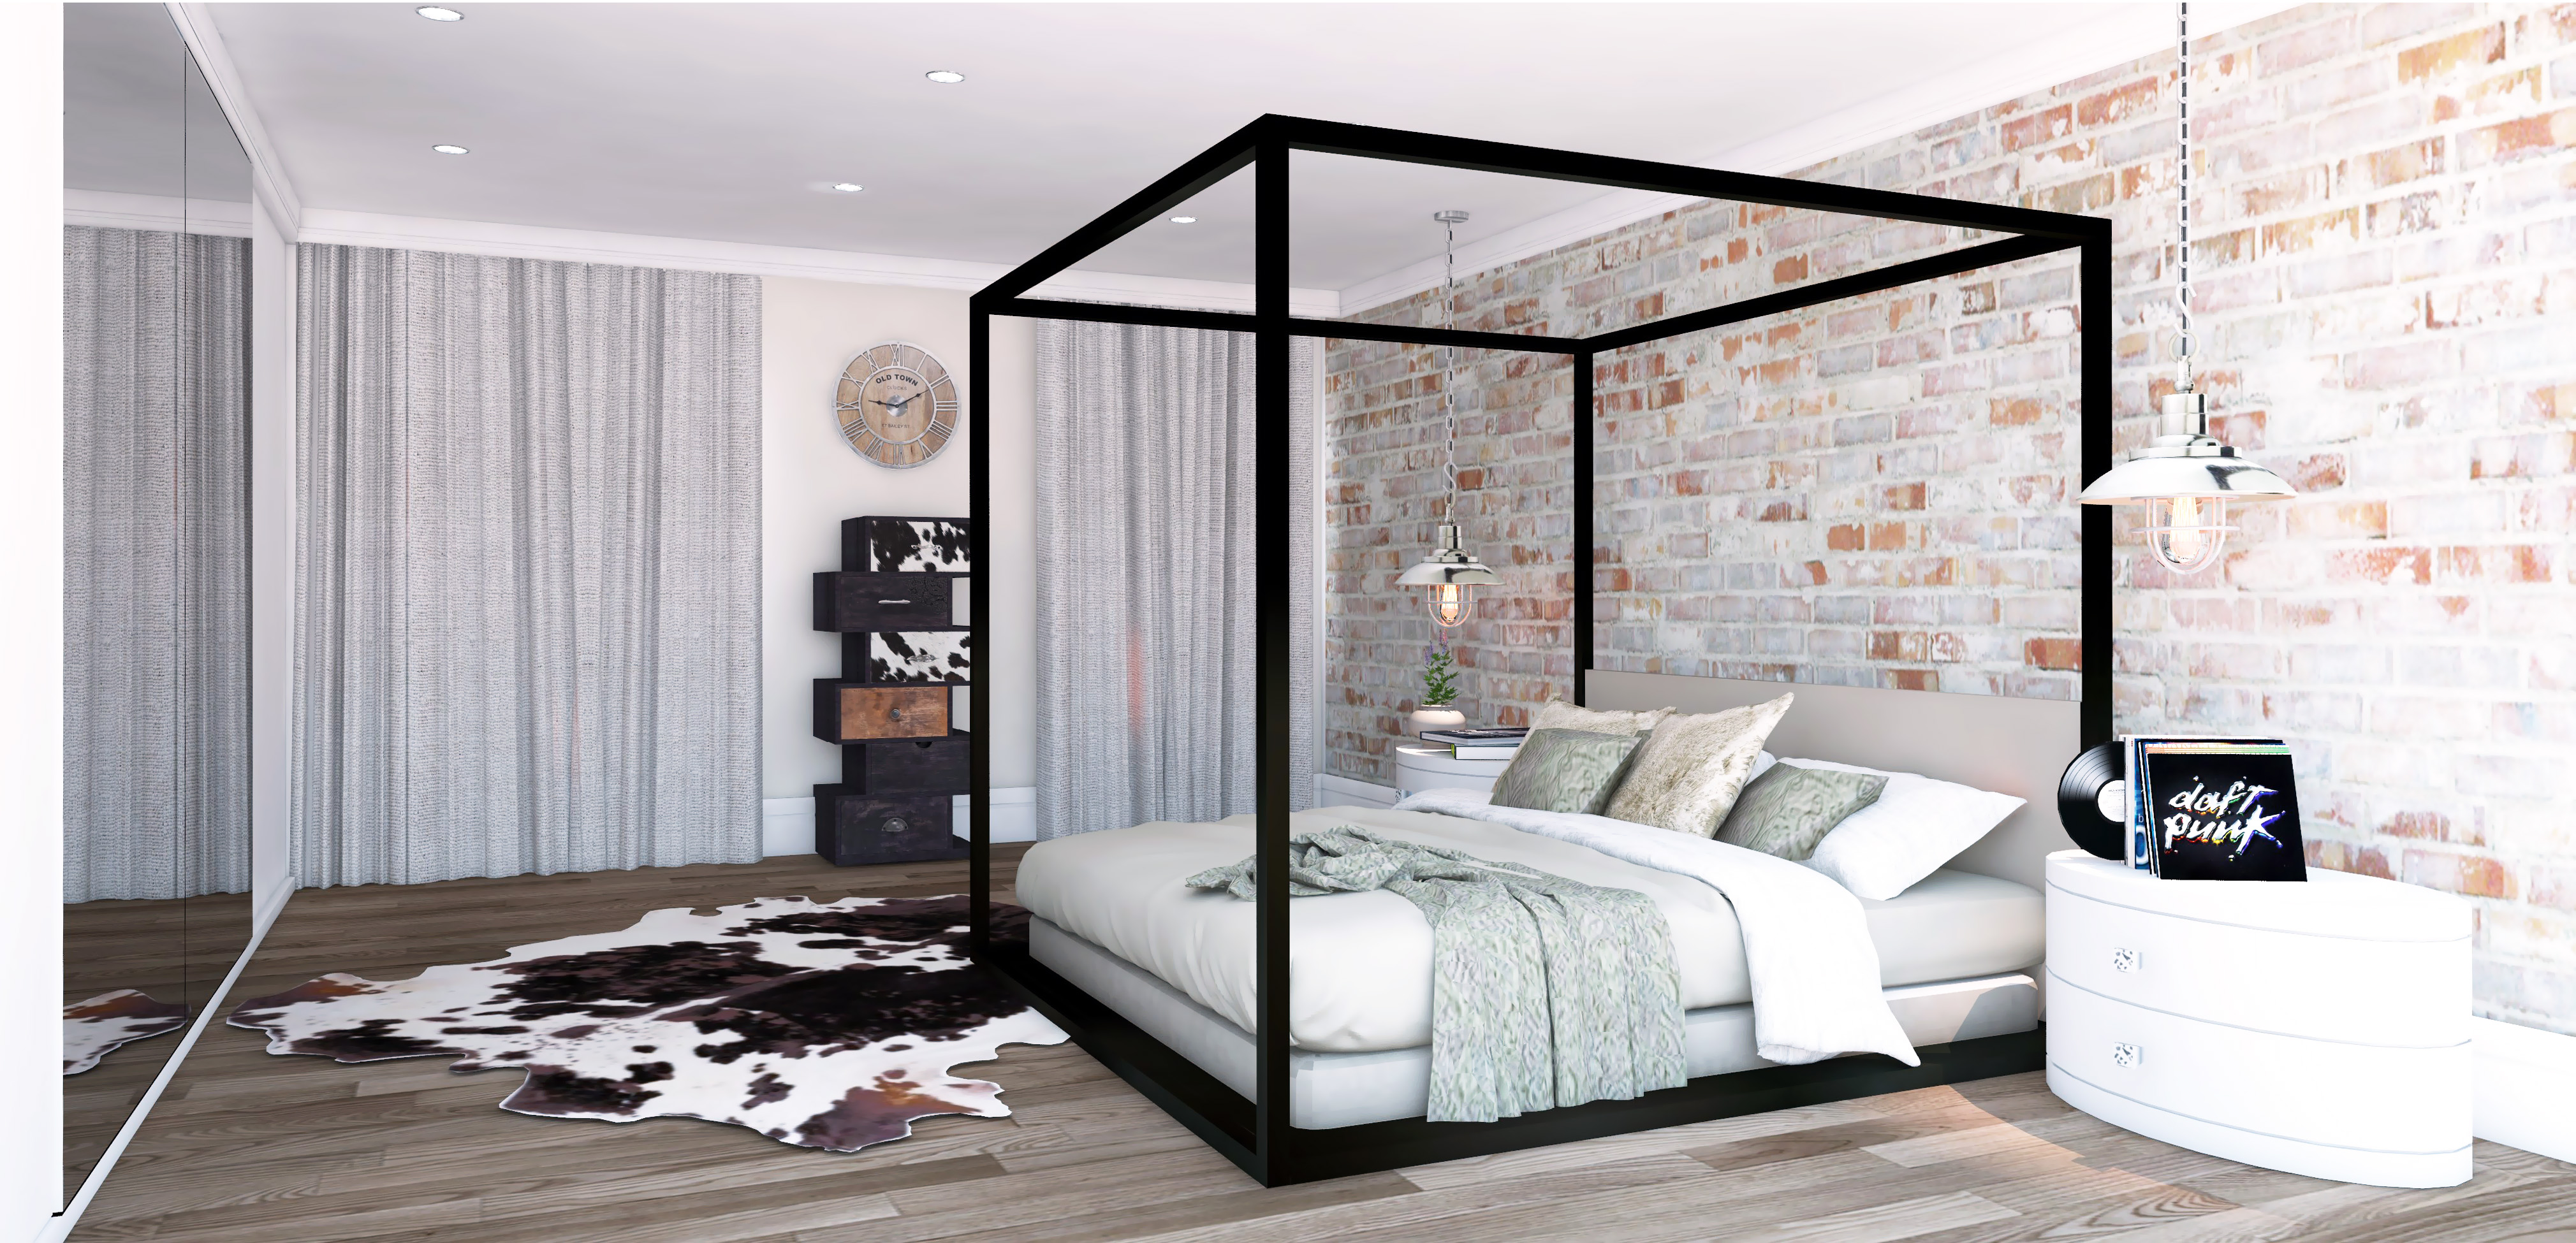 Brixton_bedroom_2